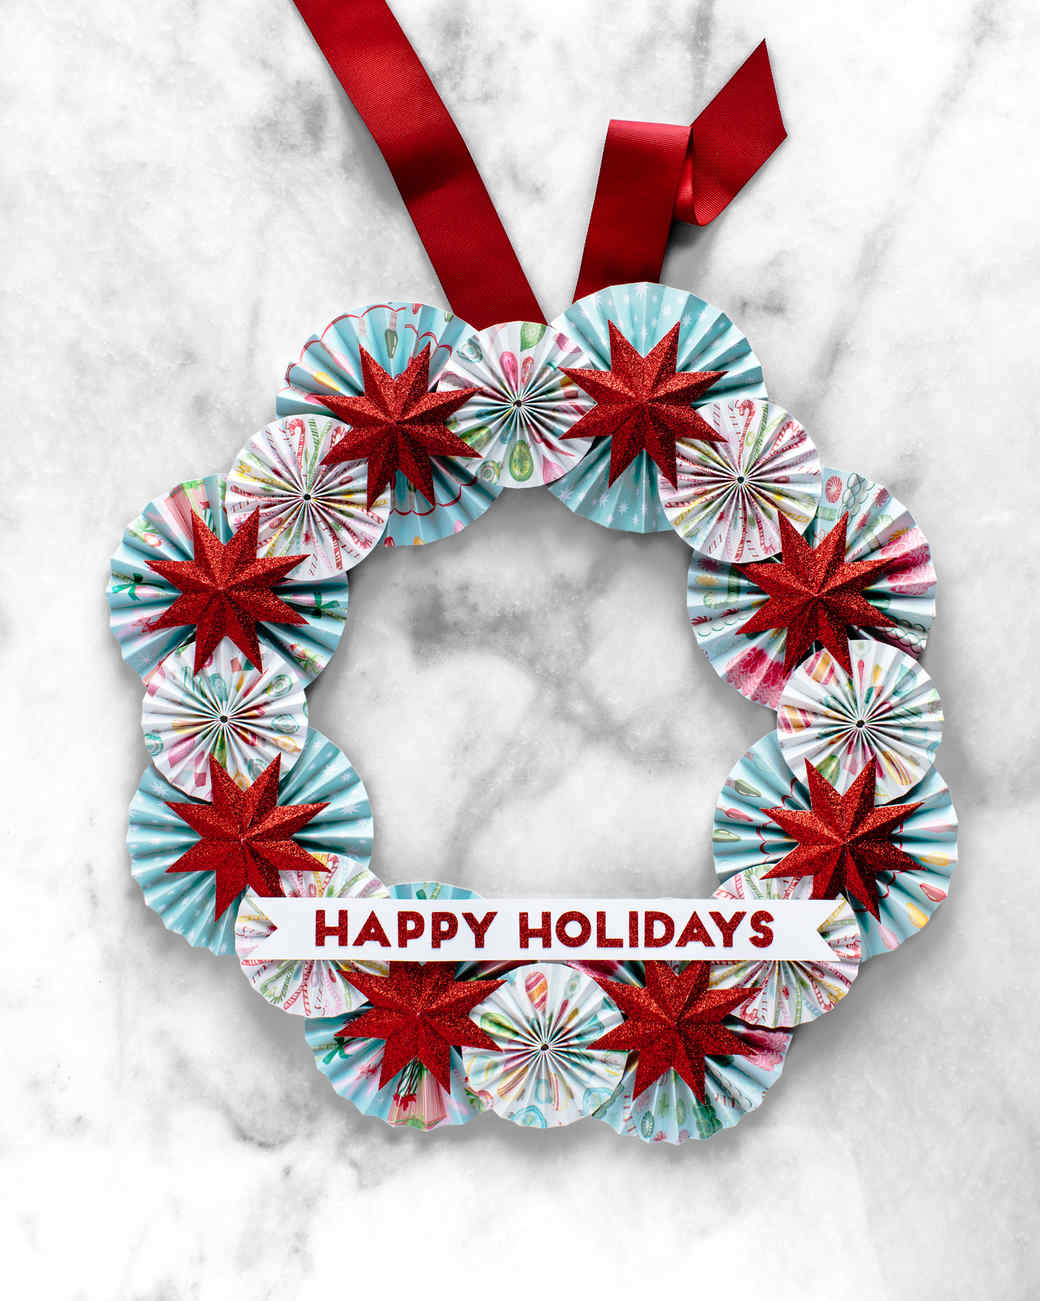 A Cheerful Paper Holiday Wreath